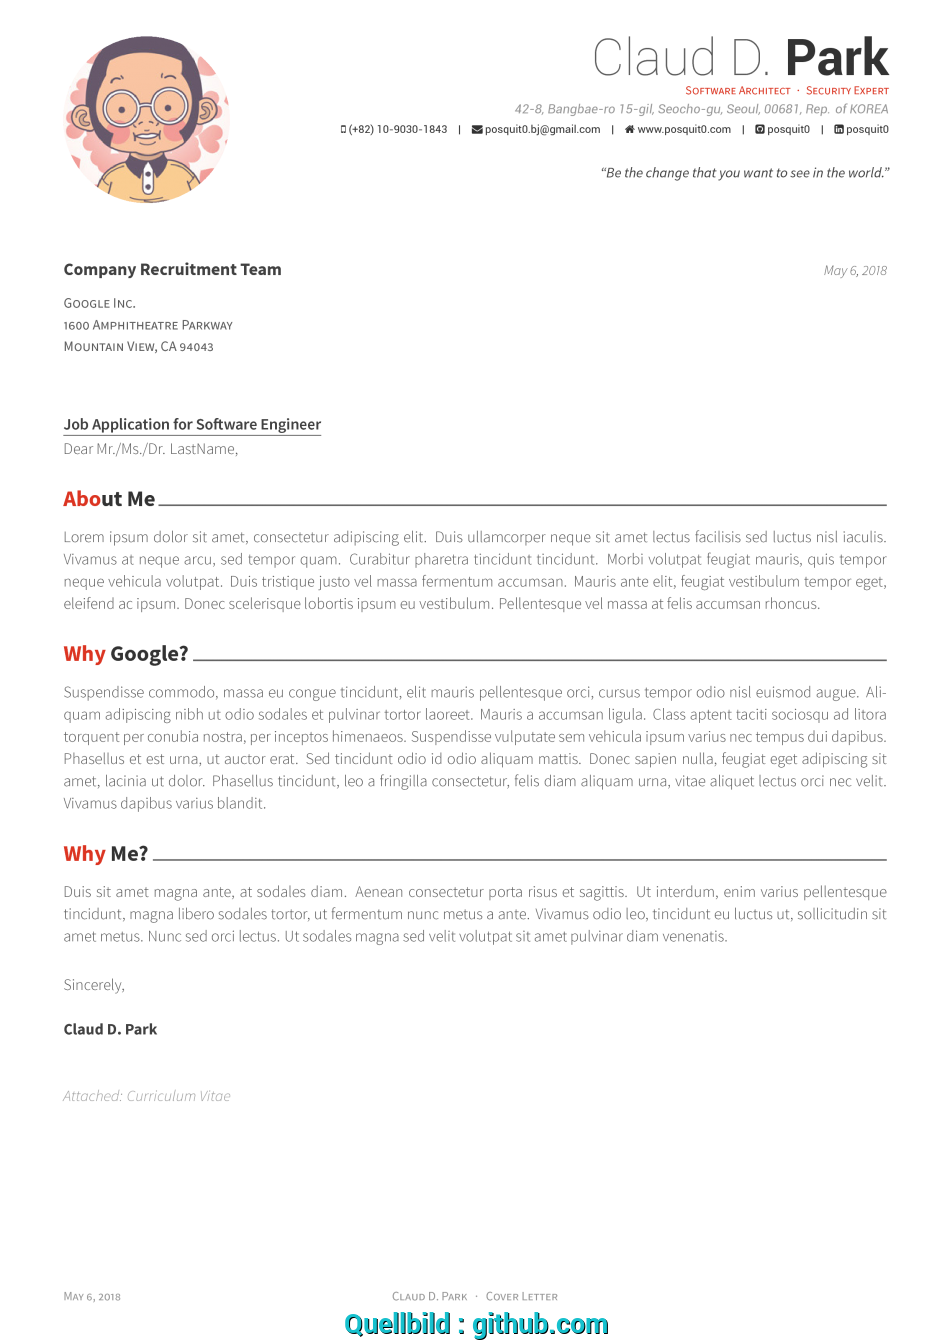 Trending GitHub, Posquit0/Awesome-CV: Awesome CV Is LaTeX Template For, Curriculum Vitae Latex